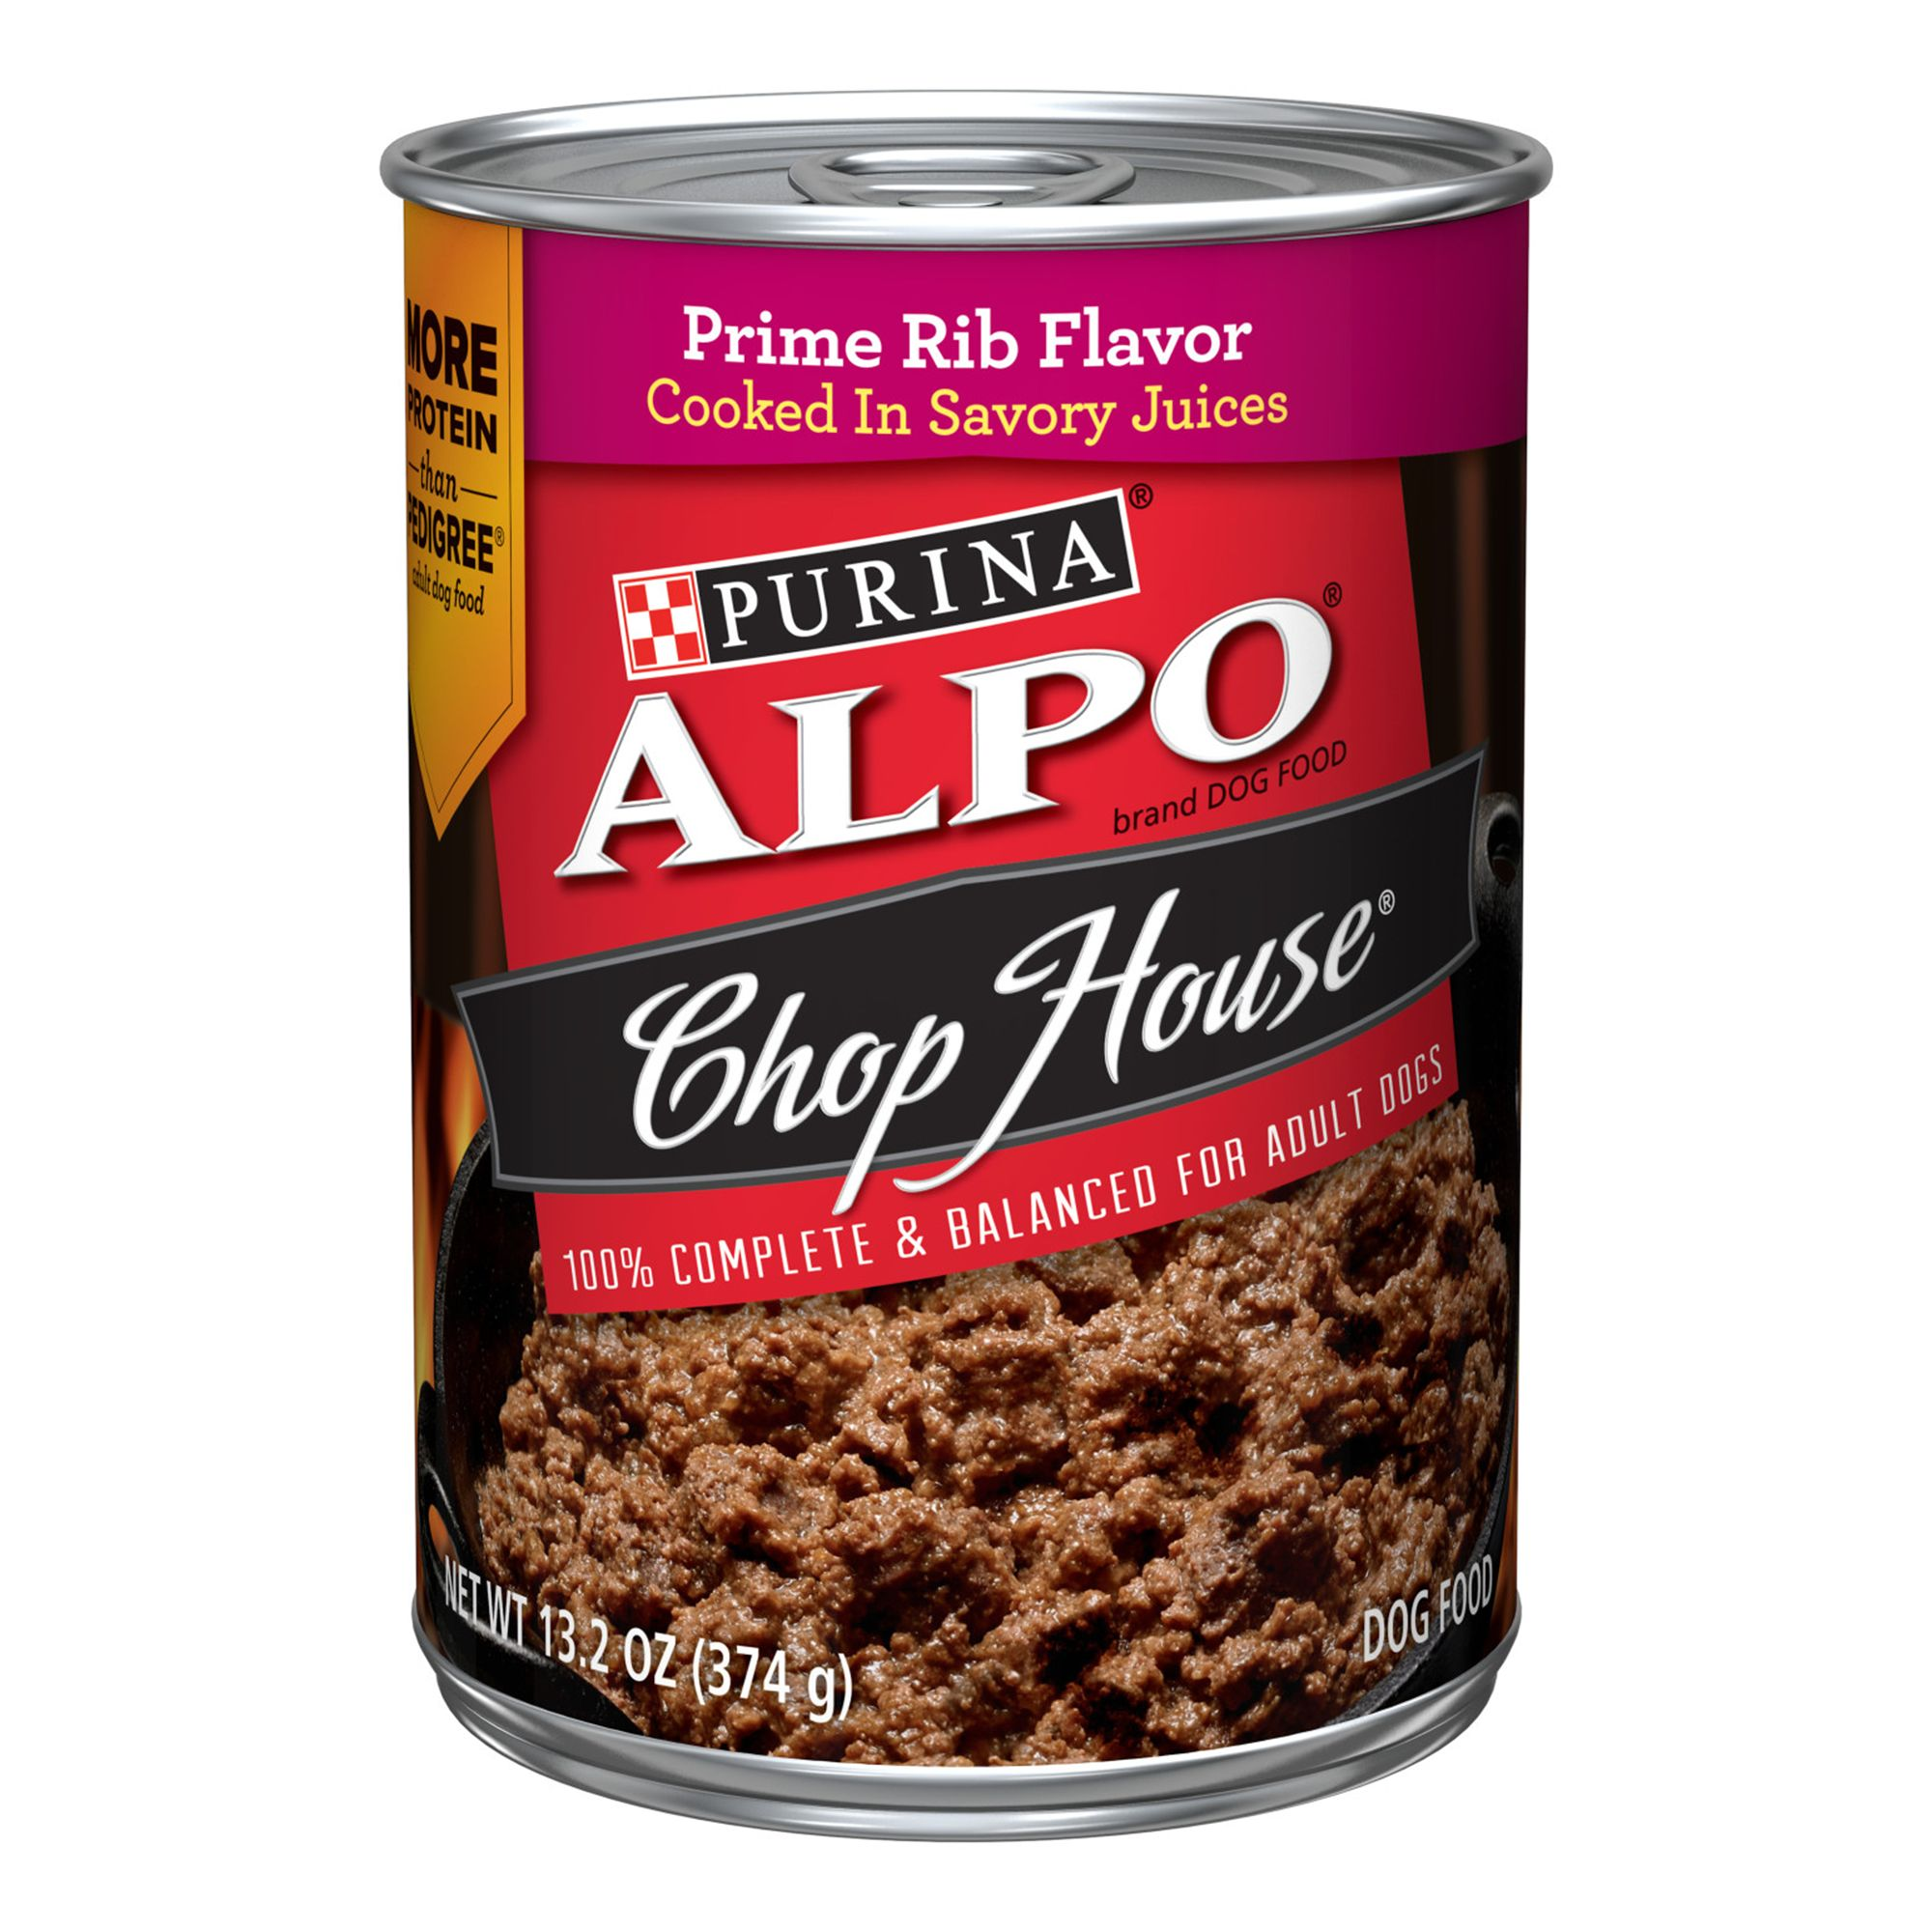 Purina Alpo Chop House Originals Adult Dog Food - Prime Rib Flavor size: 13.2 Oz 5114442